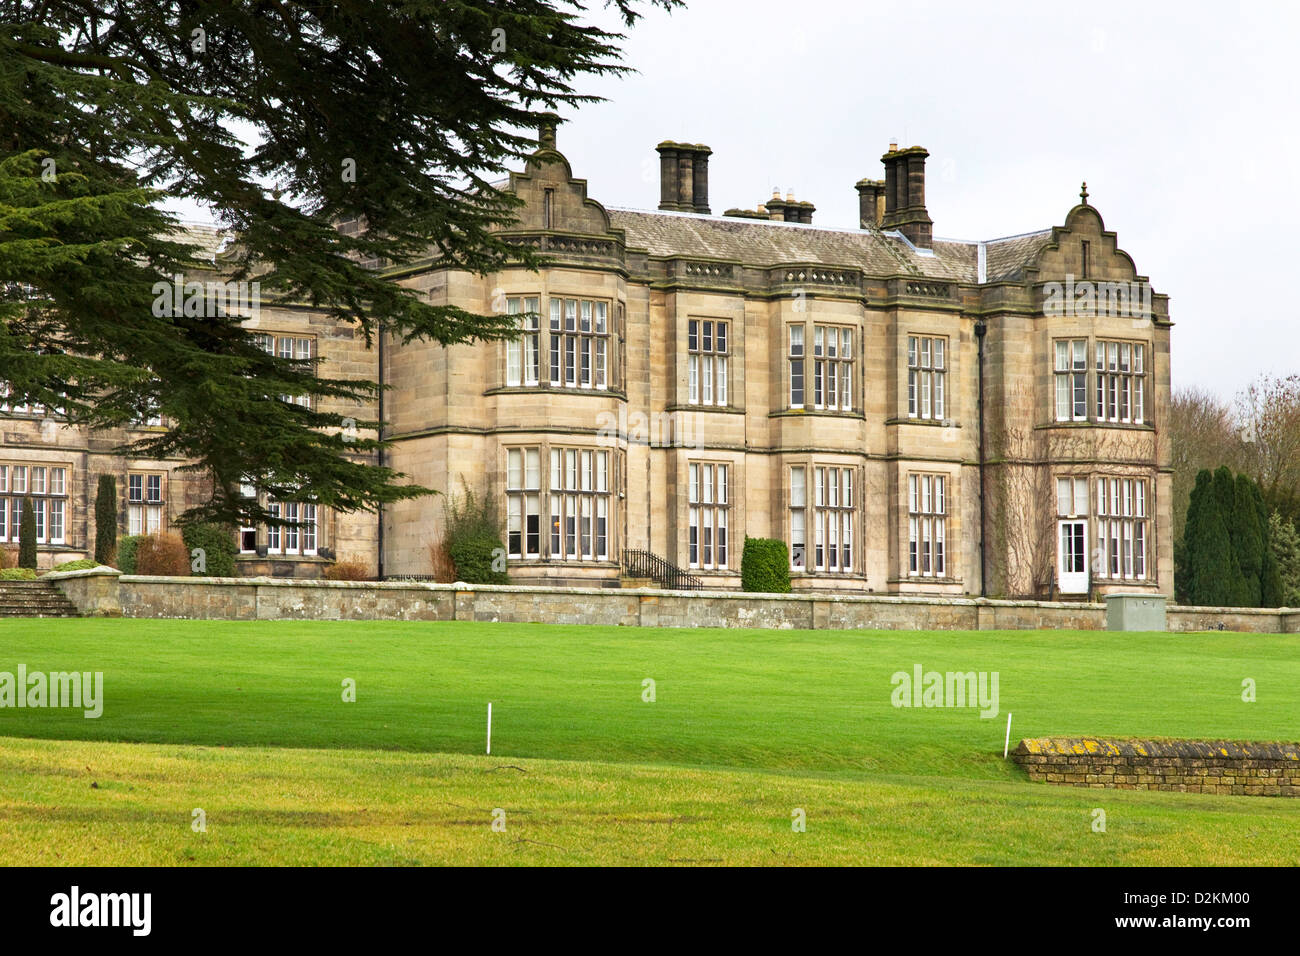 Matfen Hall, former stately home , now Hotel, Golf + Spa, Matfen, Northumberland, England, UK - Stock Image